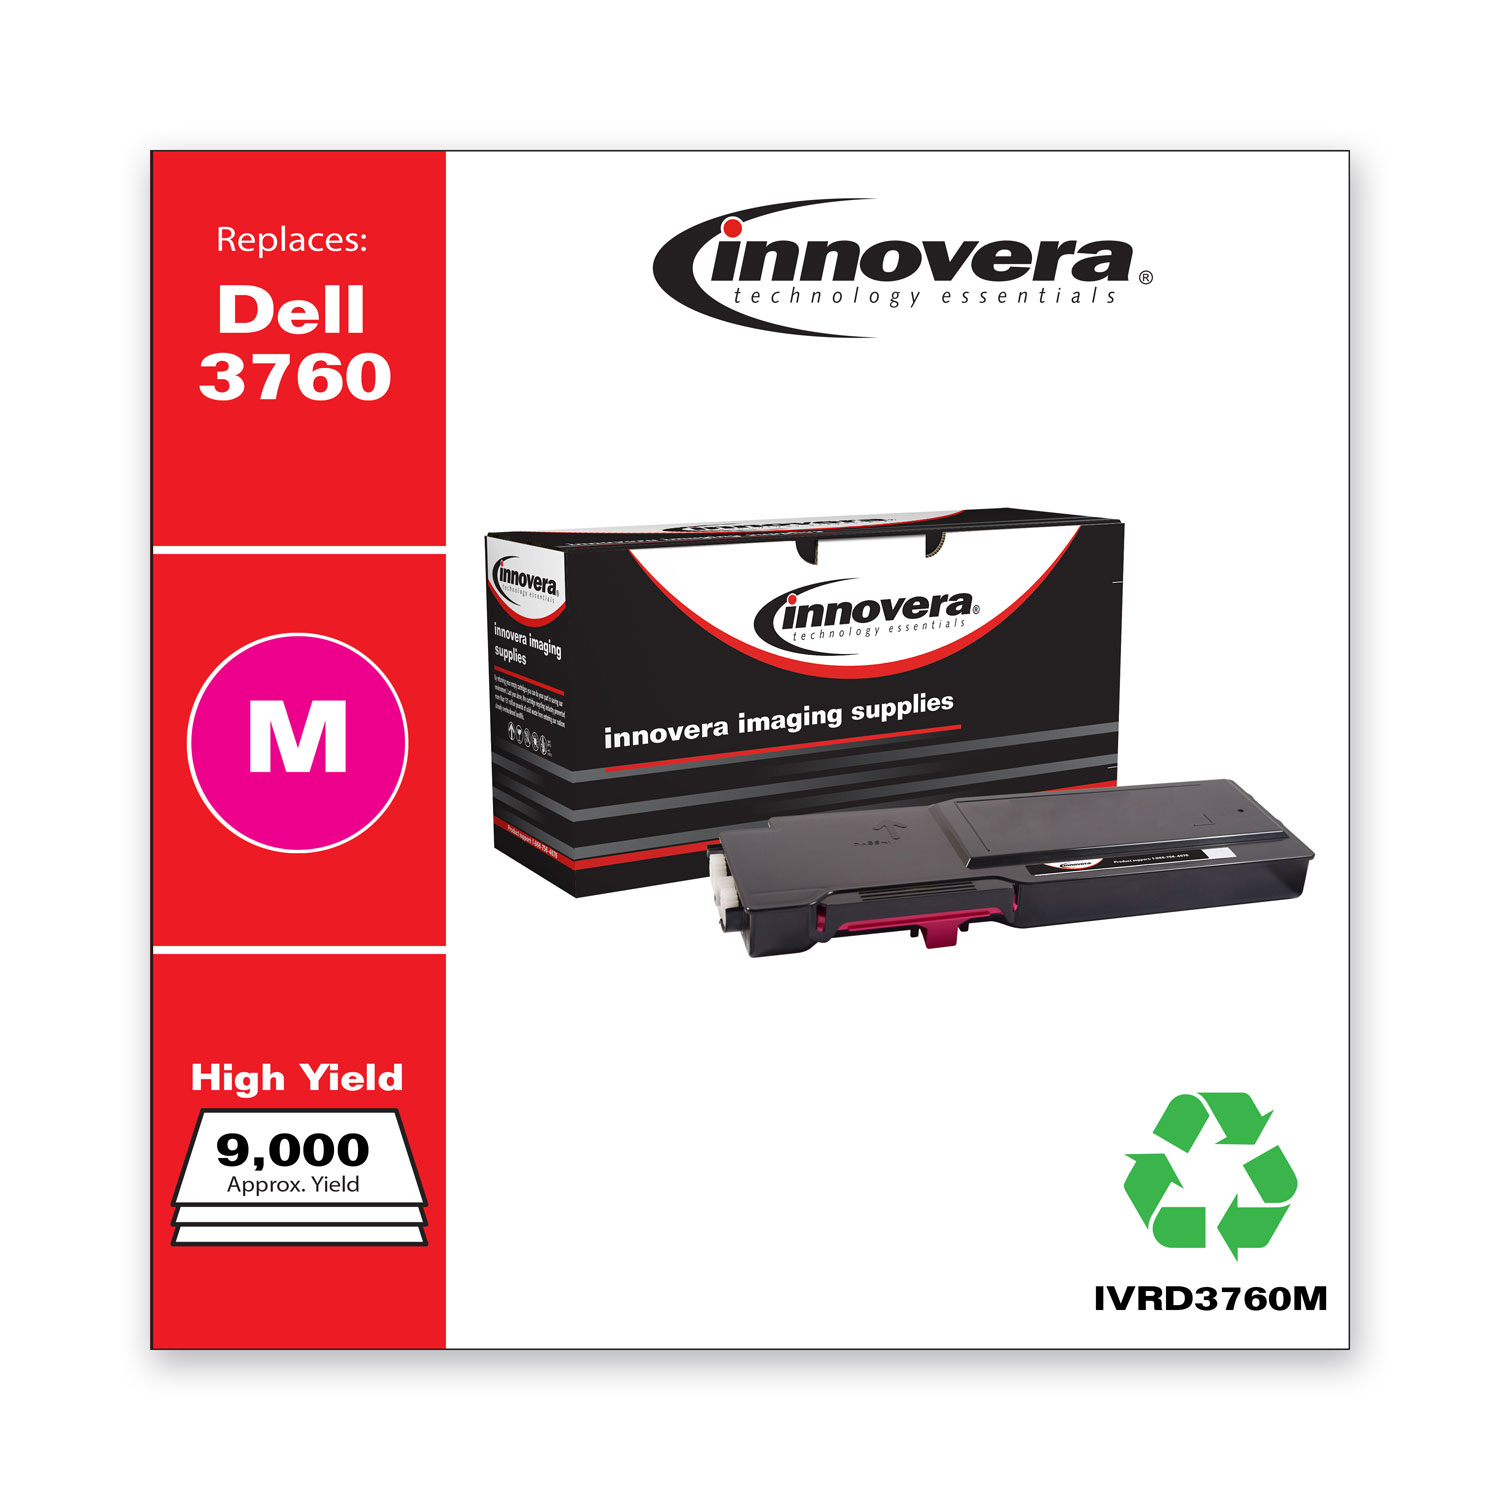 Remanufactured Magenta Toner, Replacement for Dell C3760 (331-8431), 9,000 Page-Yield IVRD3760M